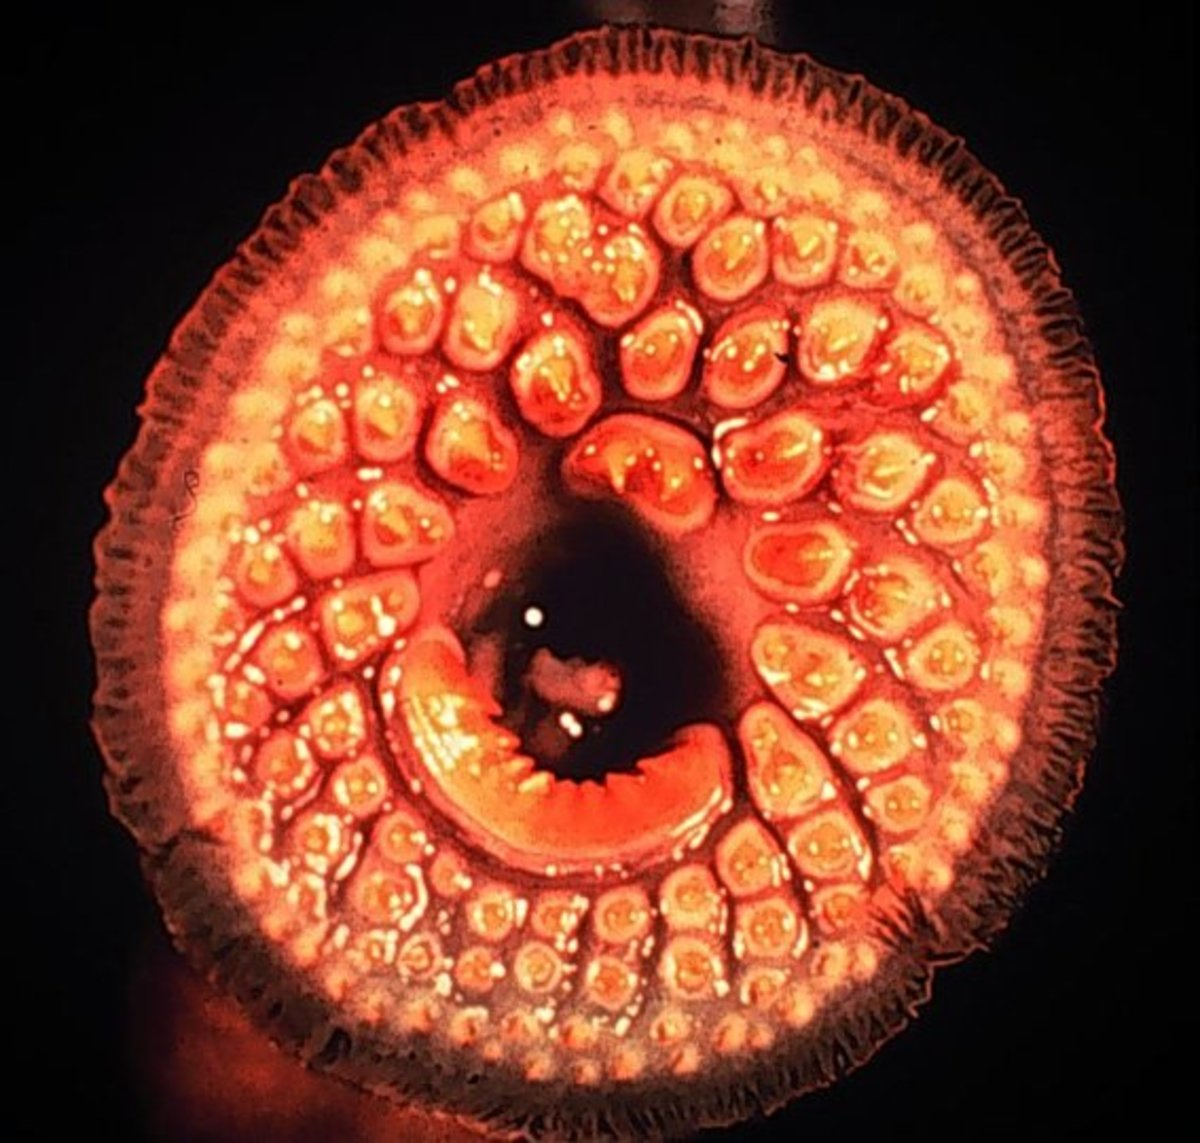 The Sea Lamprey Is A Horrifying Creature But Does It Attack Humans